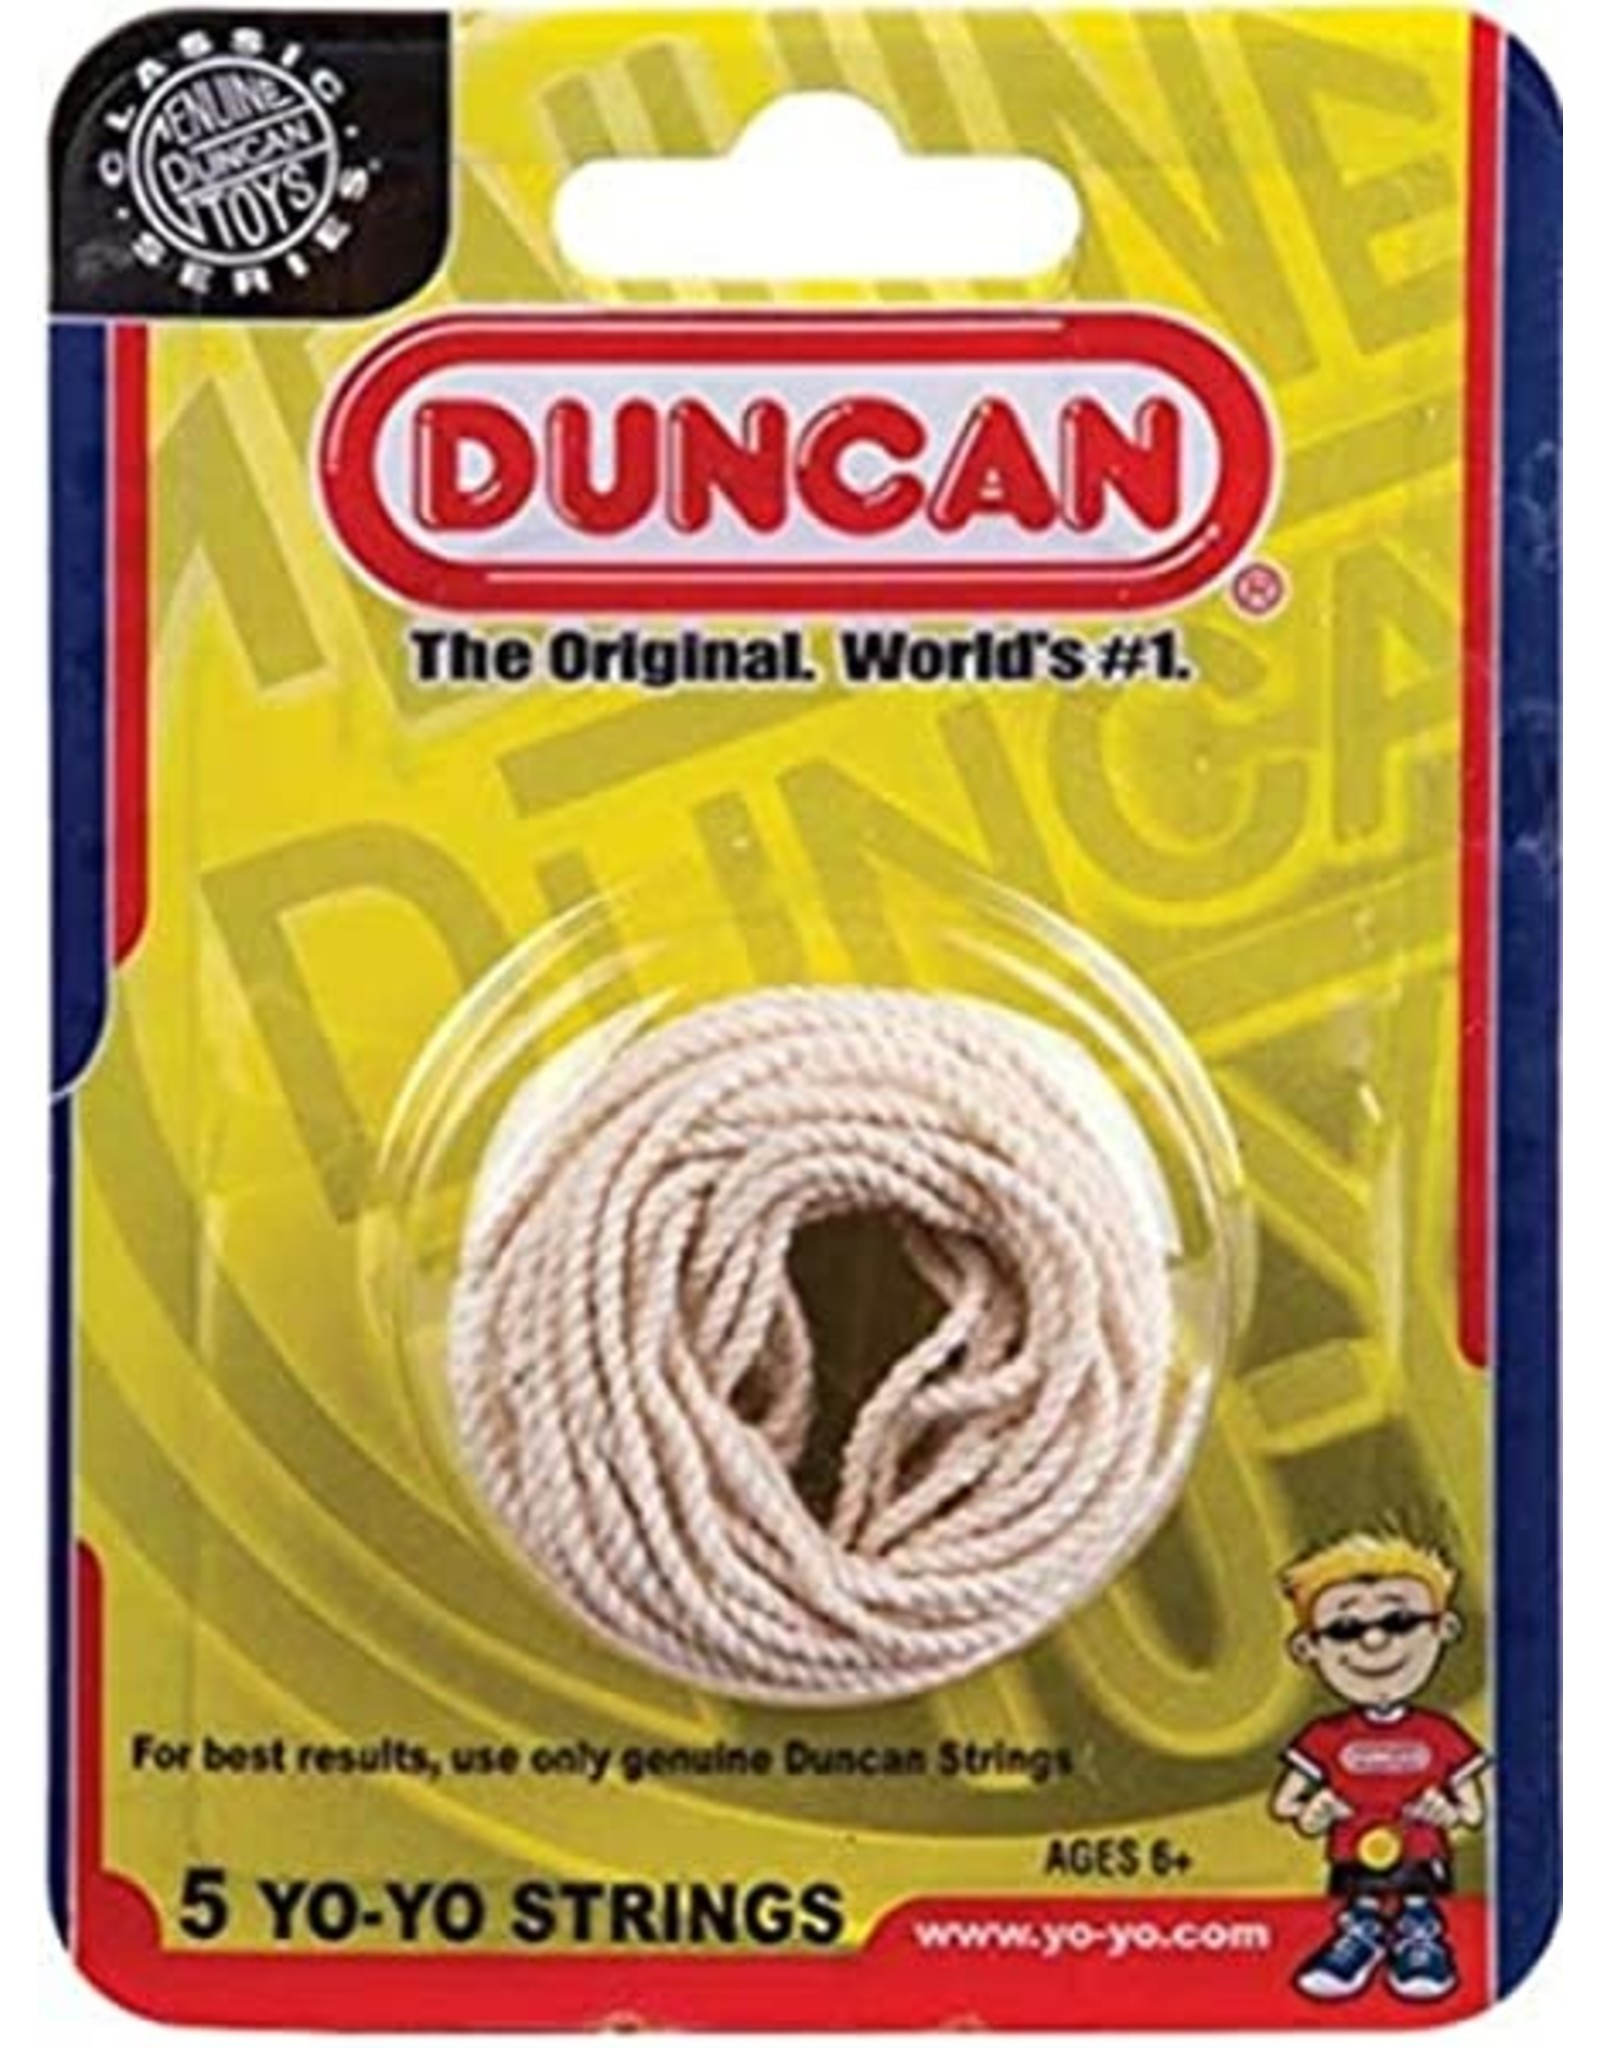 Duncan Replacement Strings